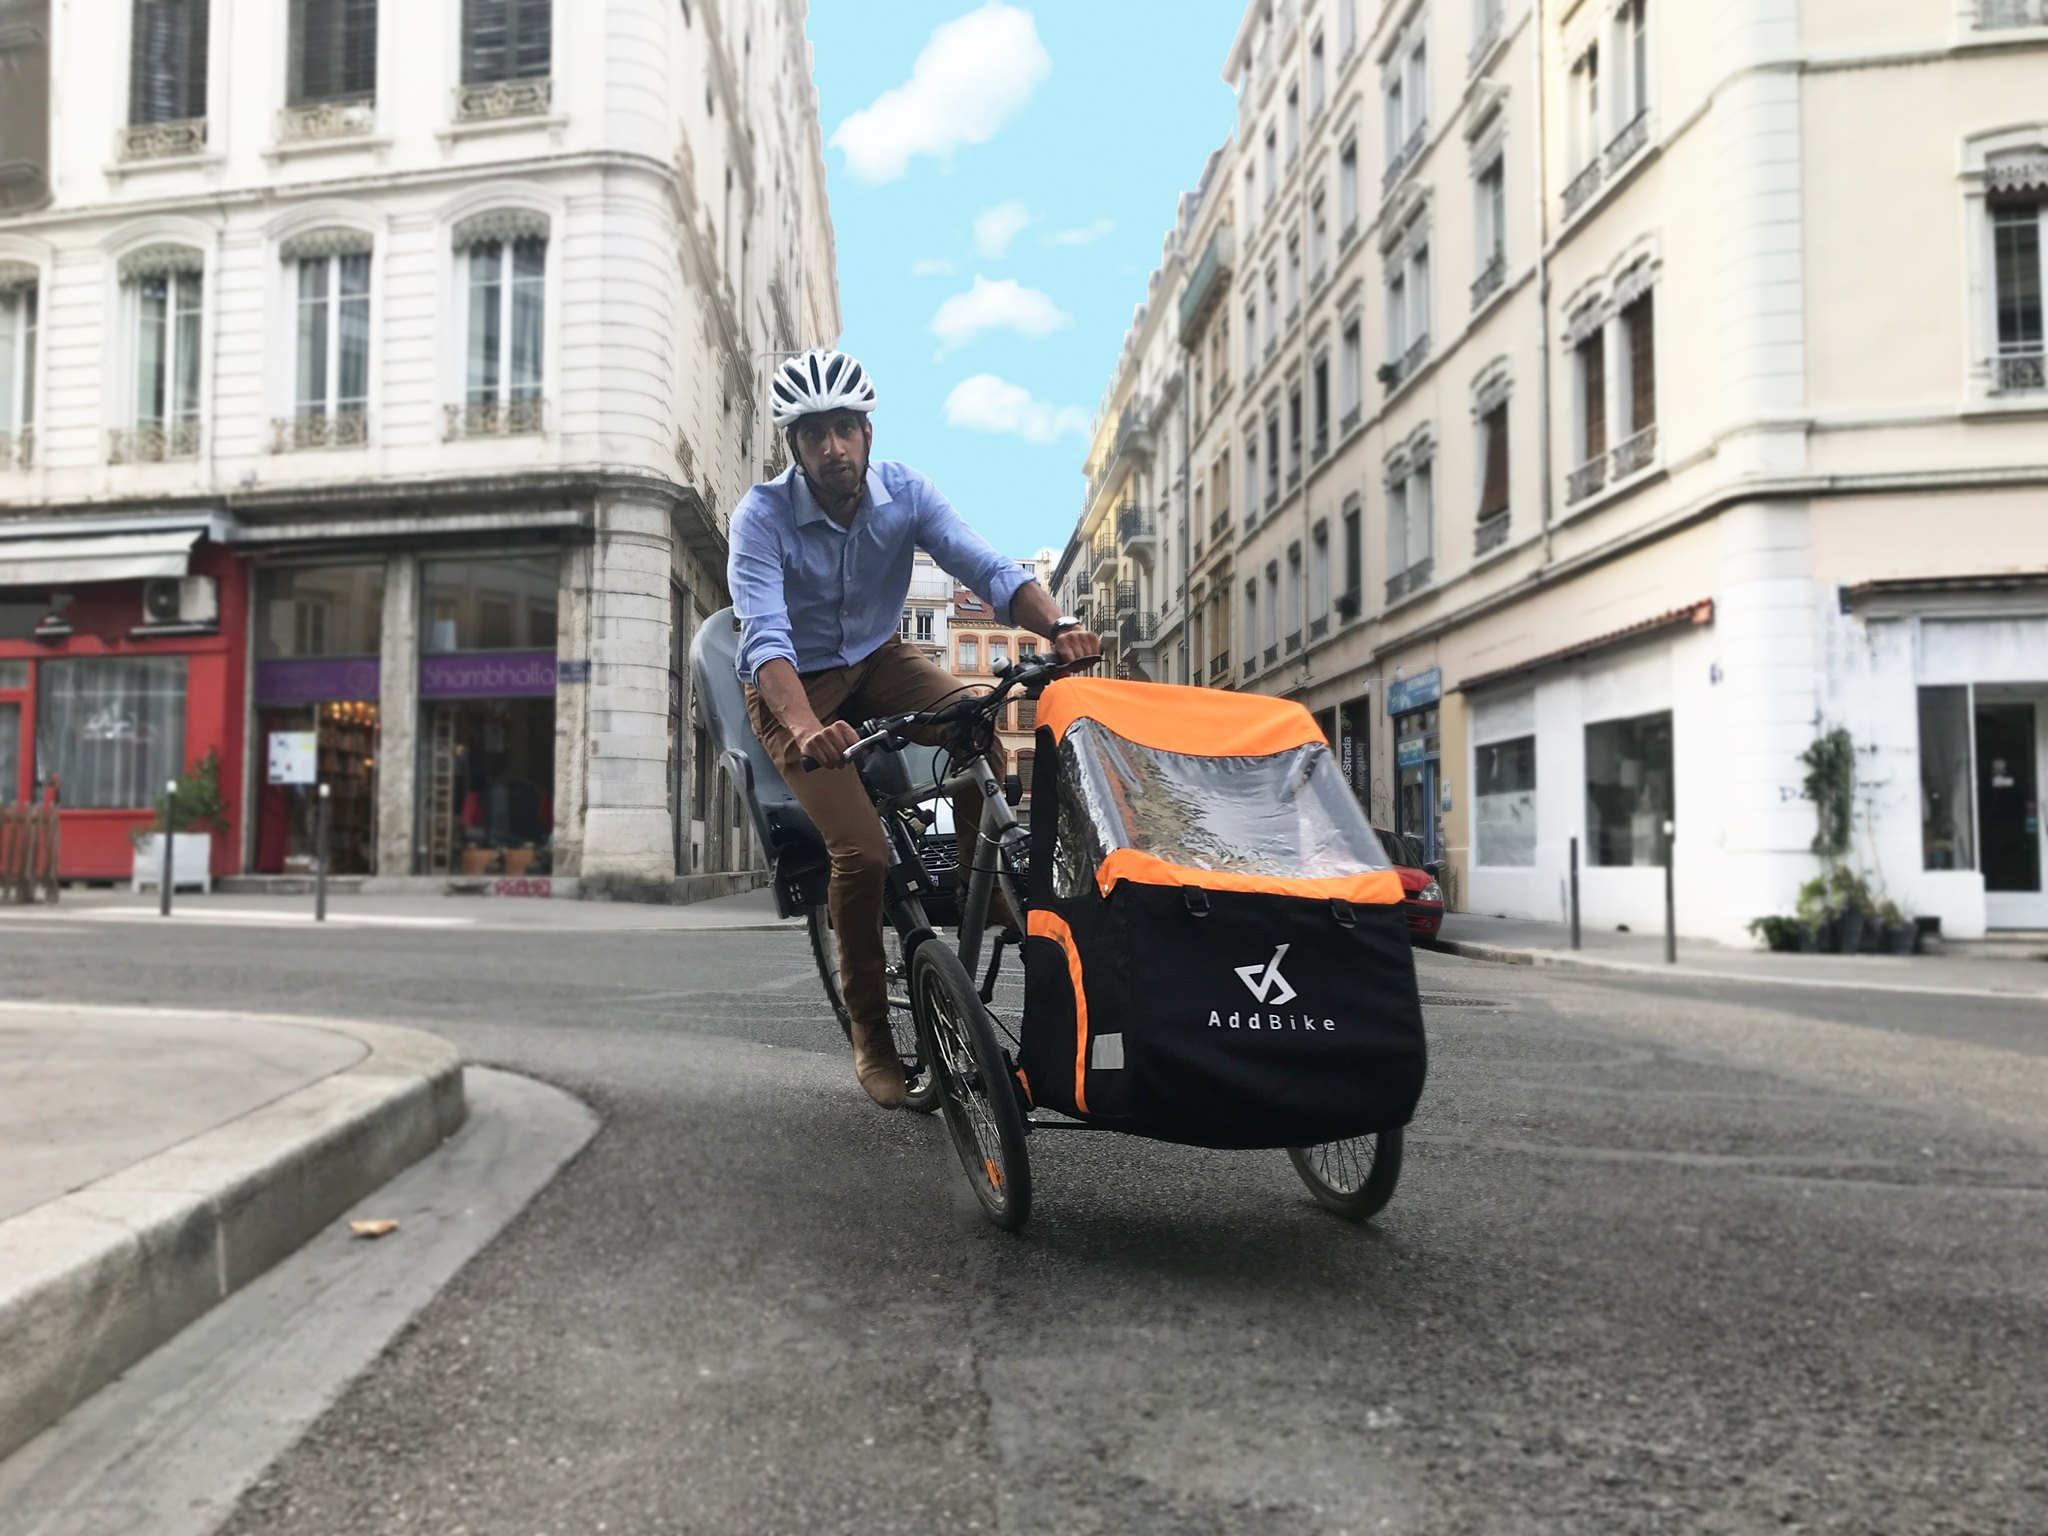 AddBike replaces the front wheel with a cargo cart